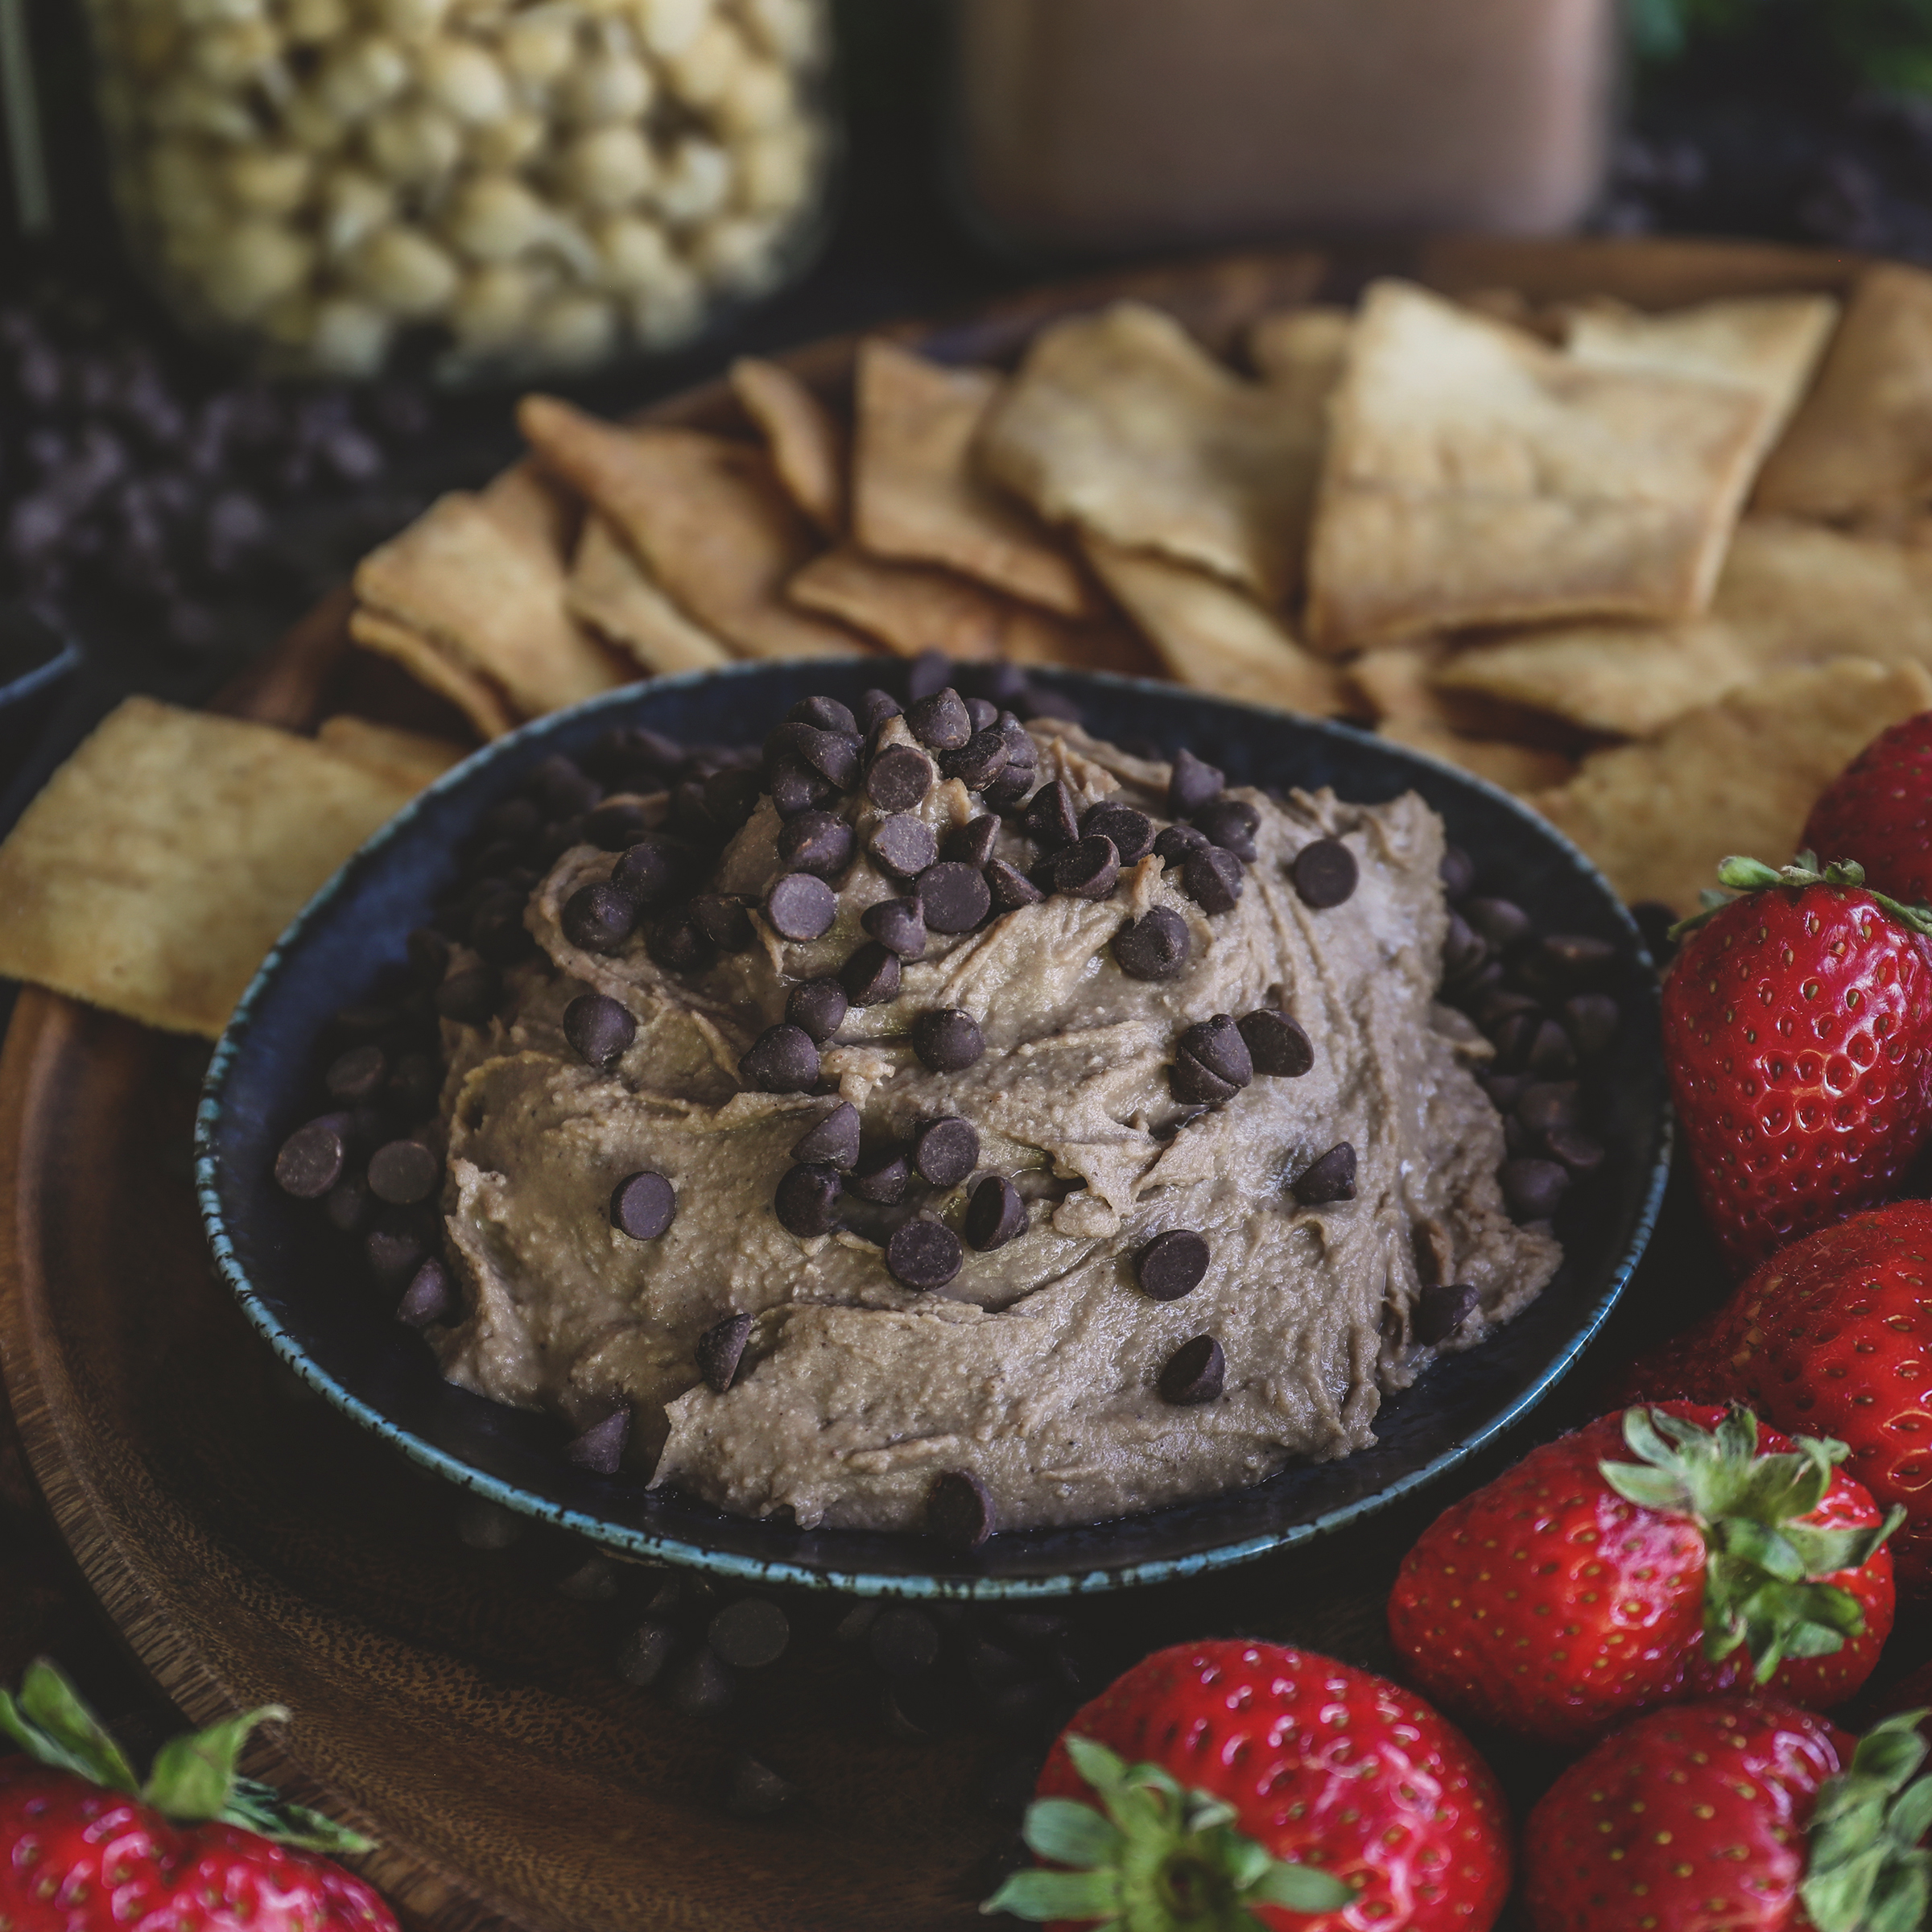 Bowl of chocolate hummus surrounded by pita crisps and strawberries.